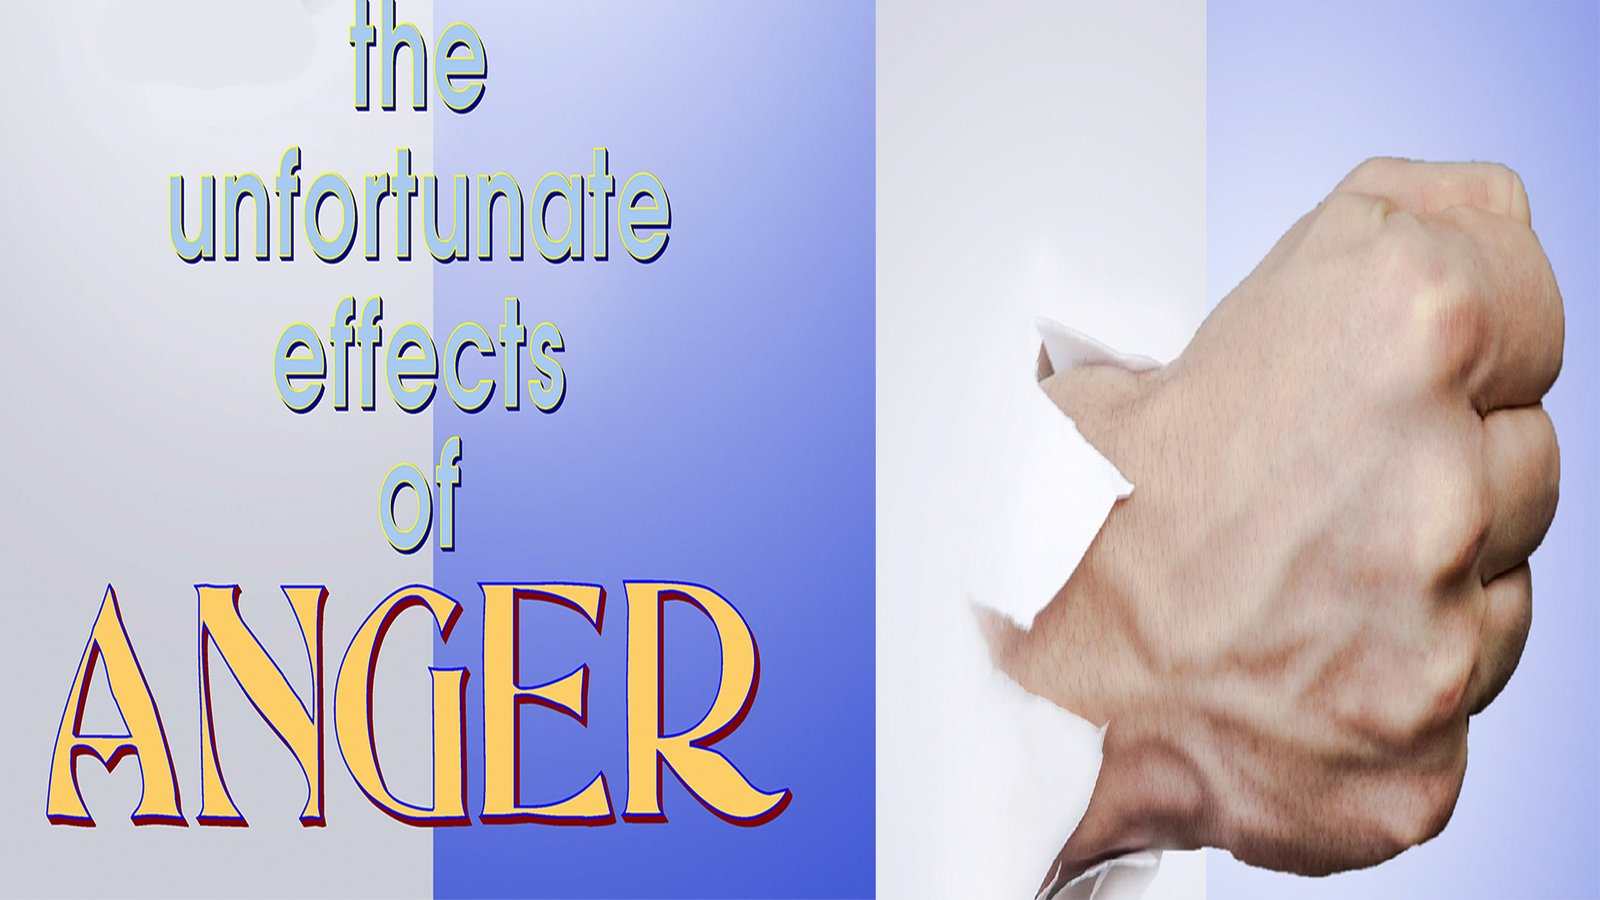 Employee Training: The Effect of Anger